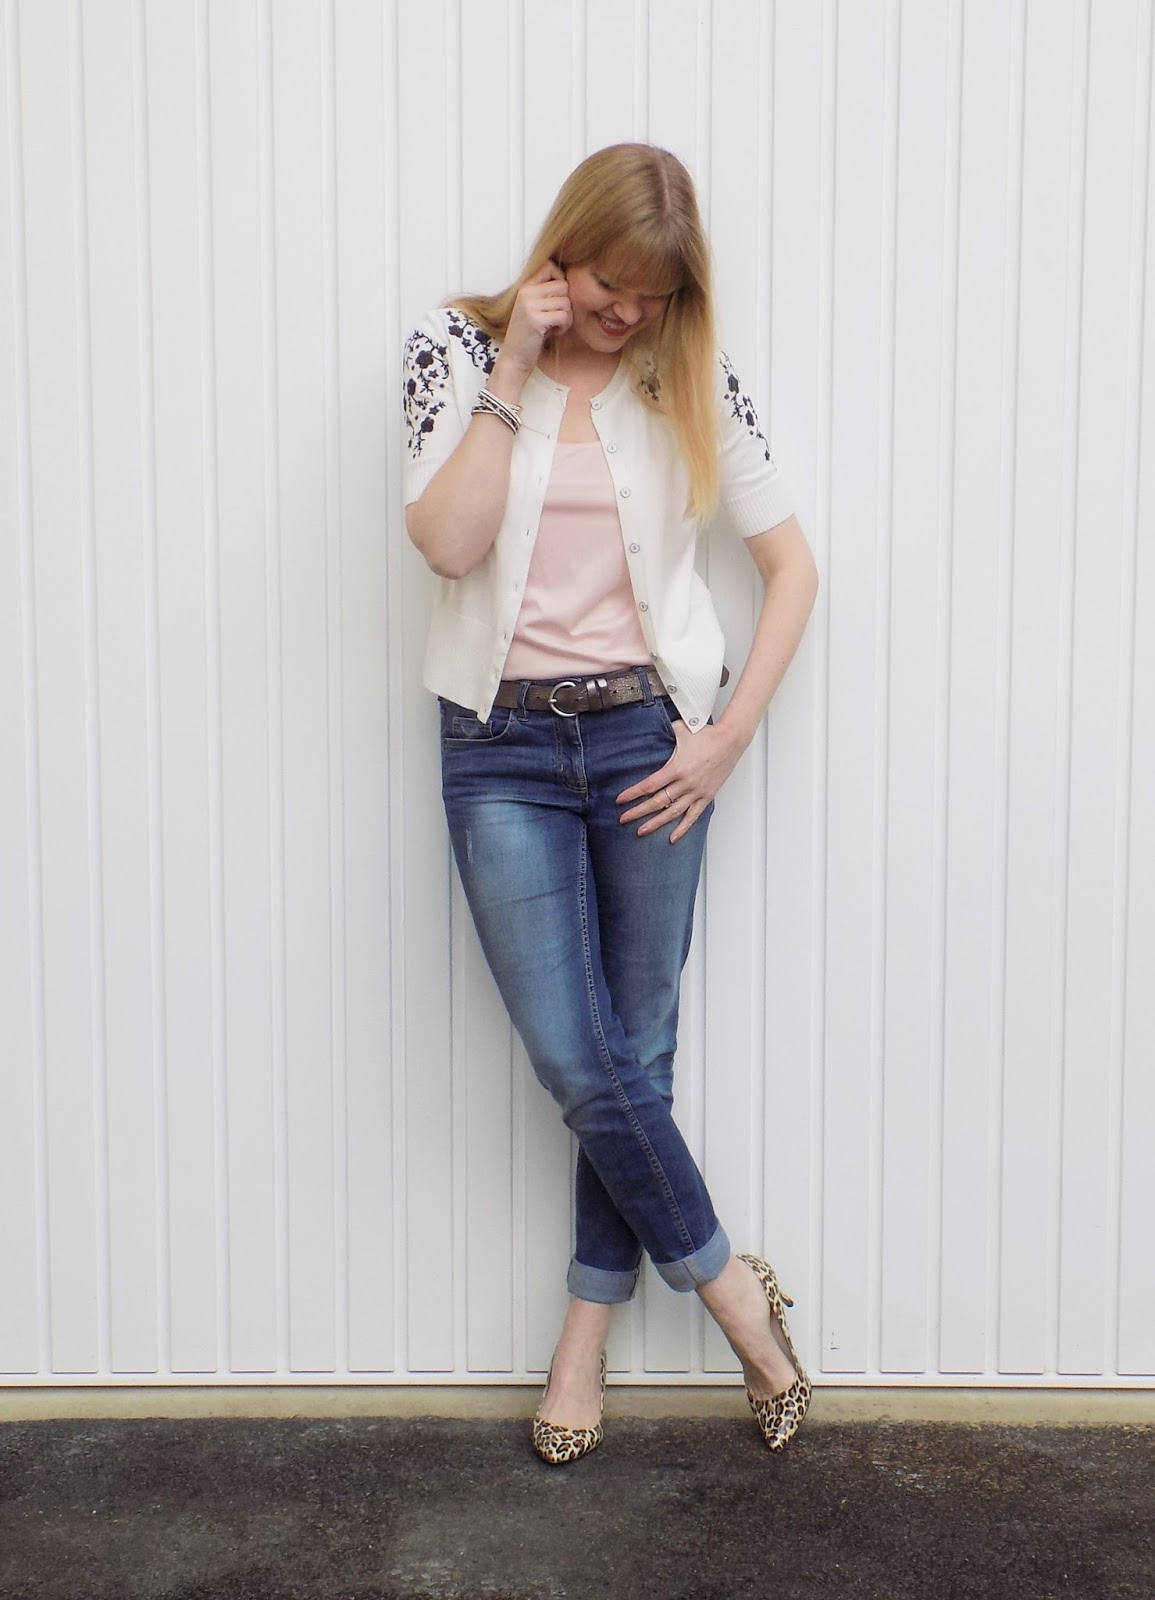 Embroidered cropped cardigan, boyfriend jeans and leopard print shoes